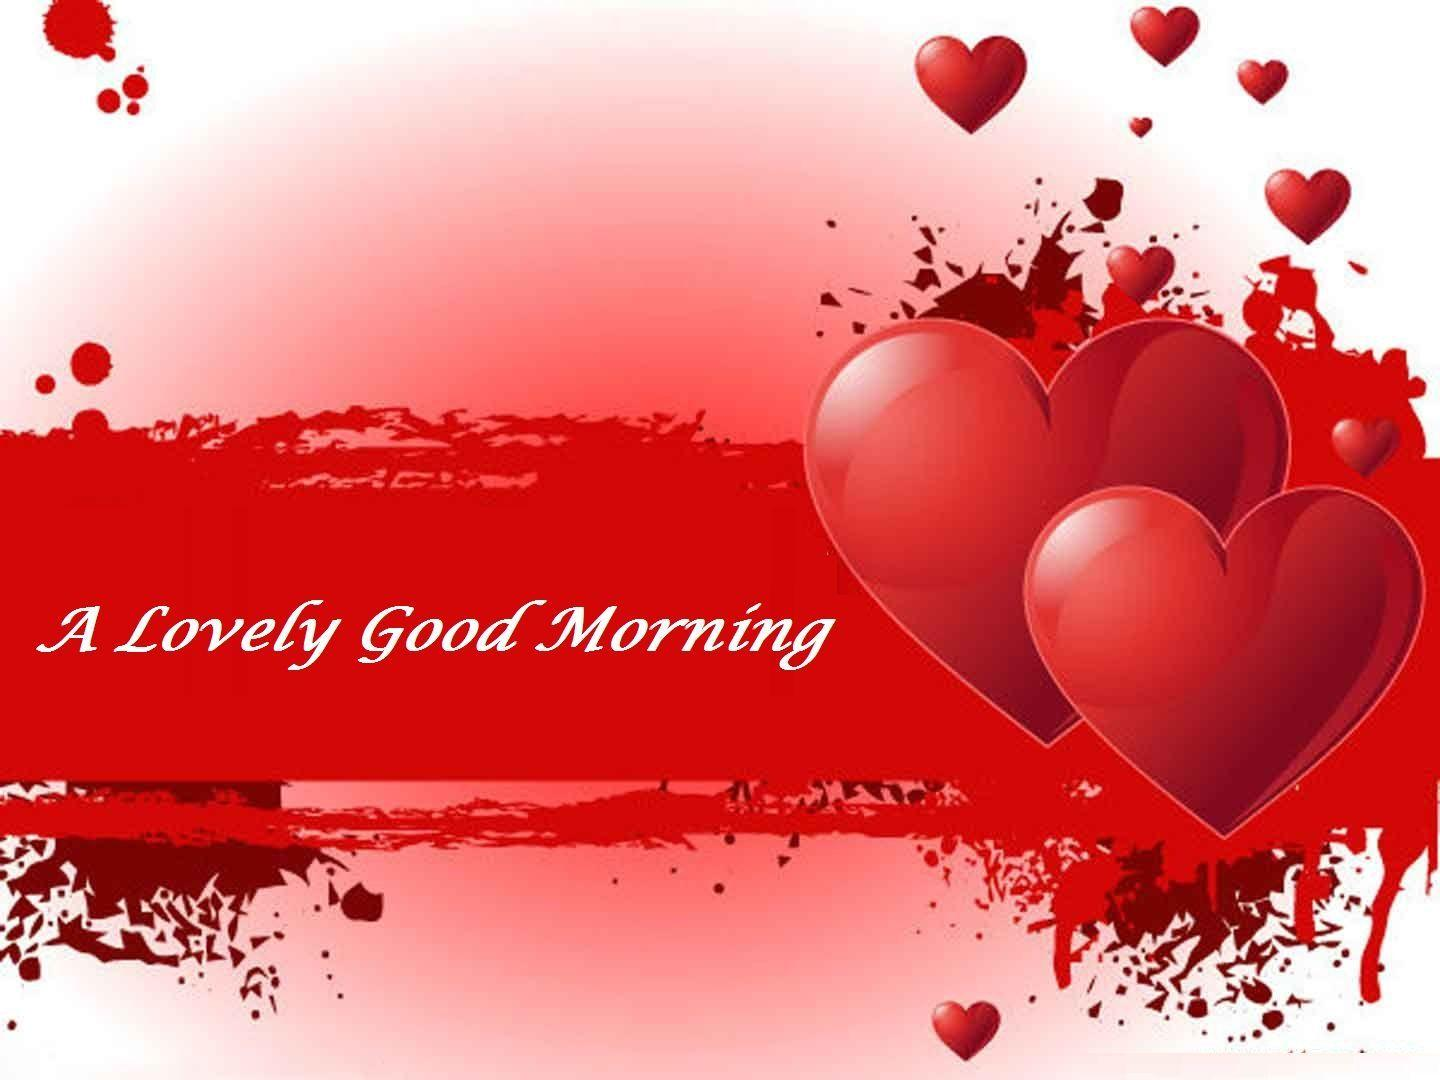 good morning wishes wallpapers